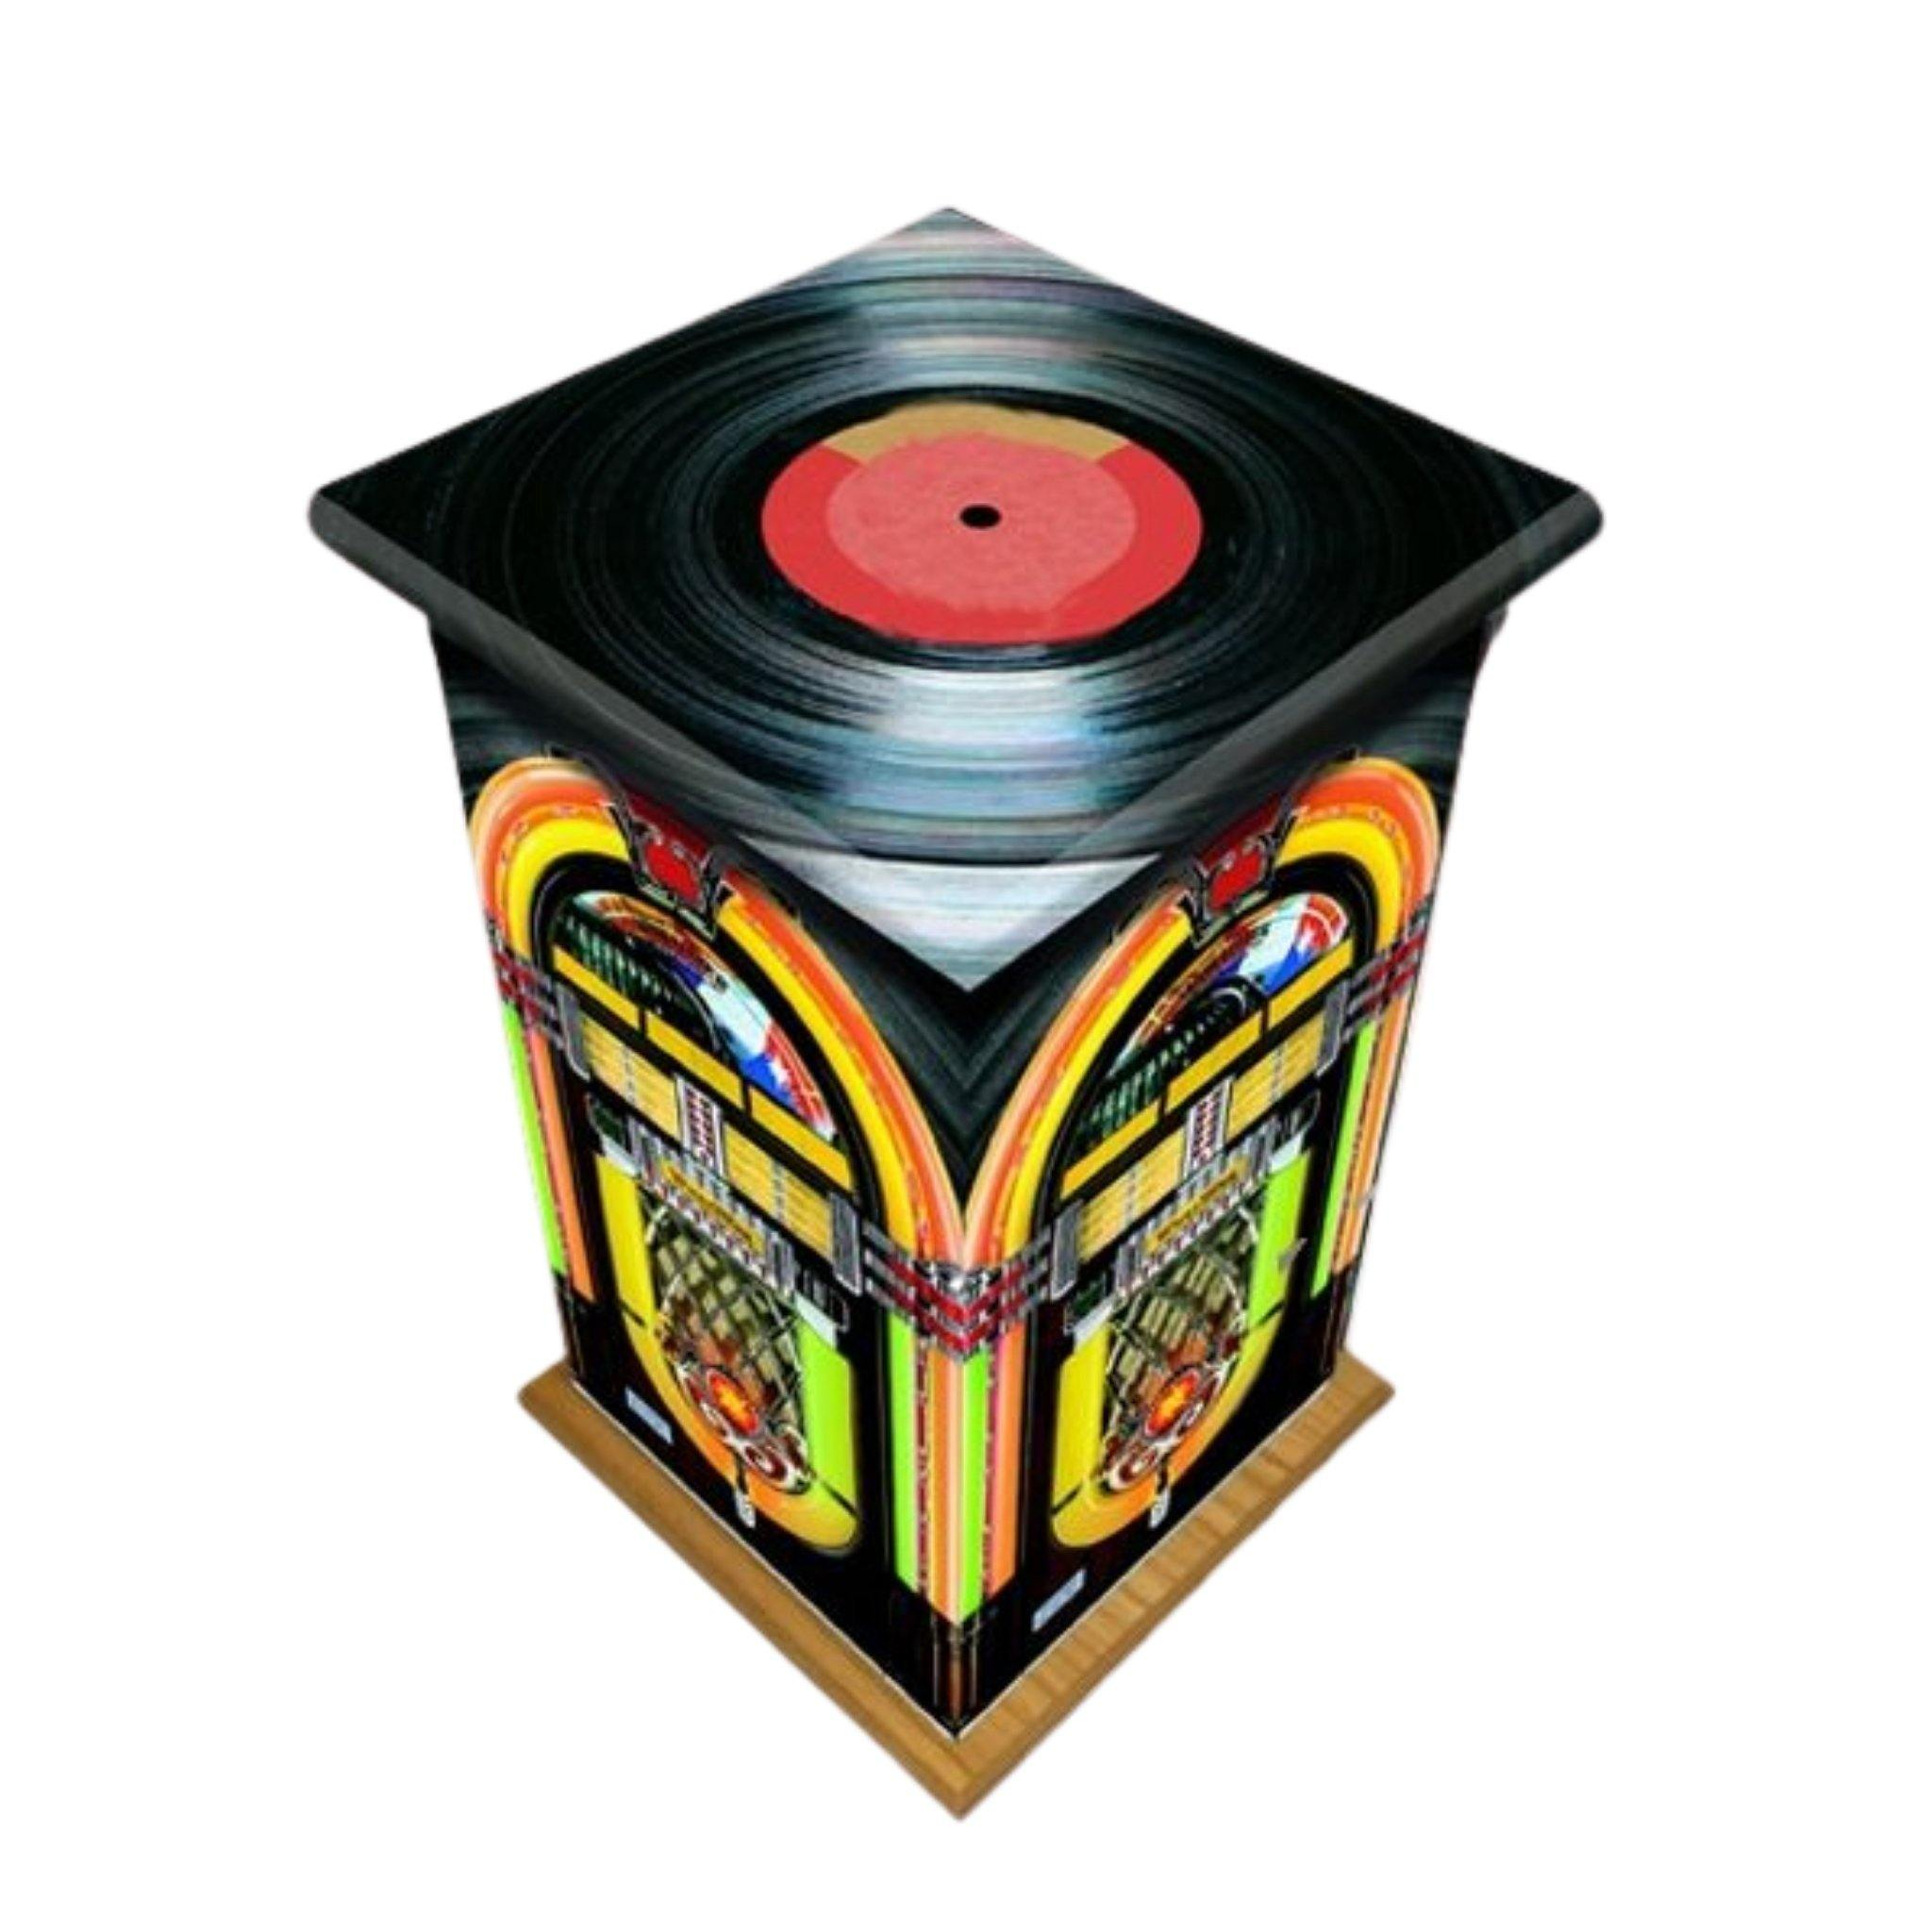 Vinyl Jukebox Wooden Cremation Ashes Urn Adult - Urns UK